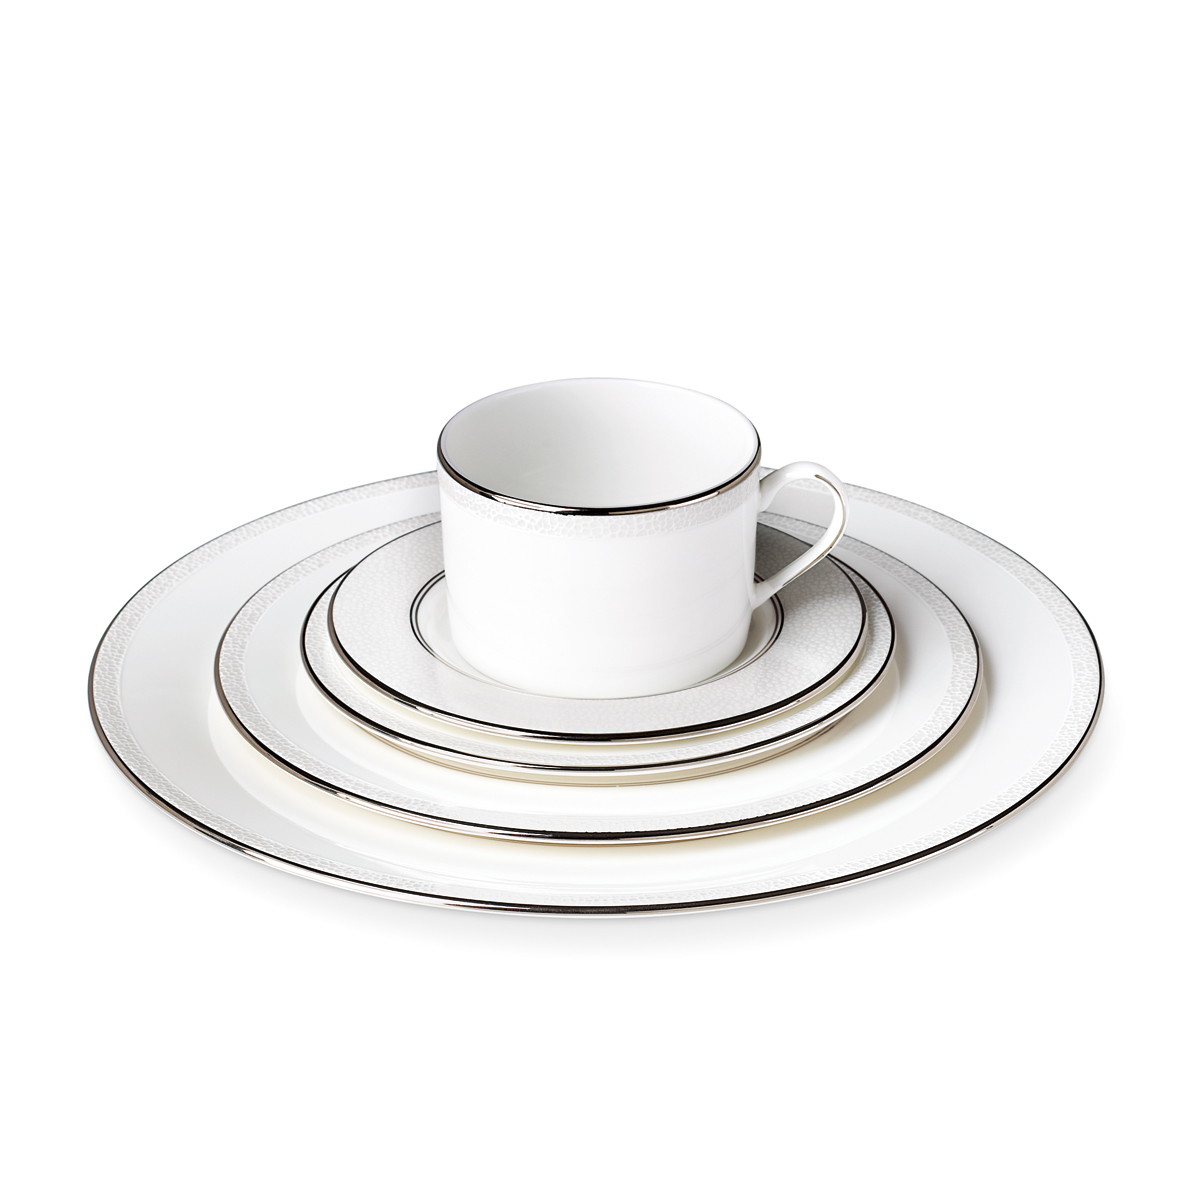 Lenox China kate spade Cypress Point, 5 Piece Place Setting